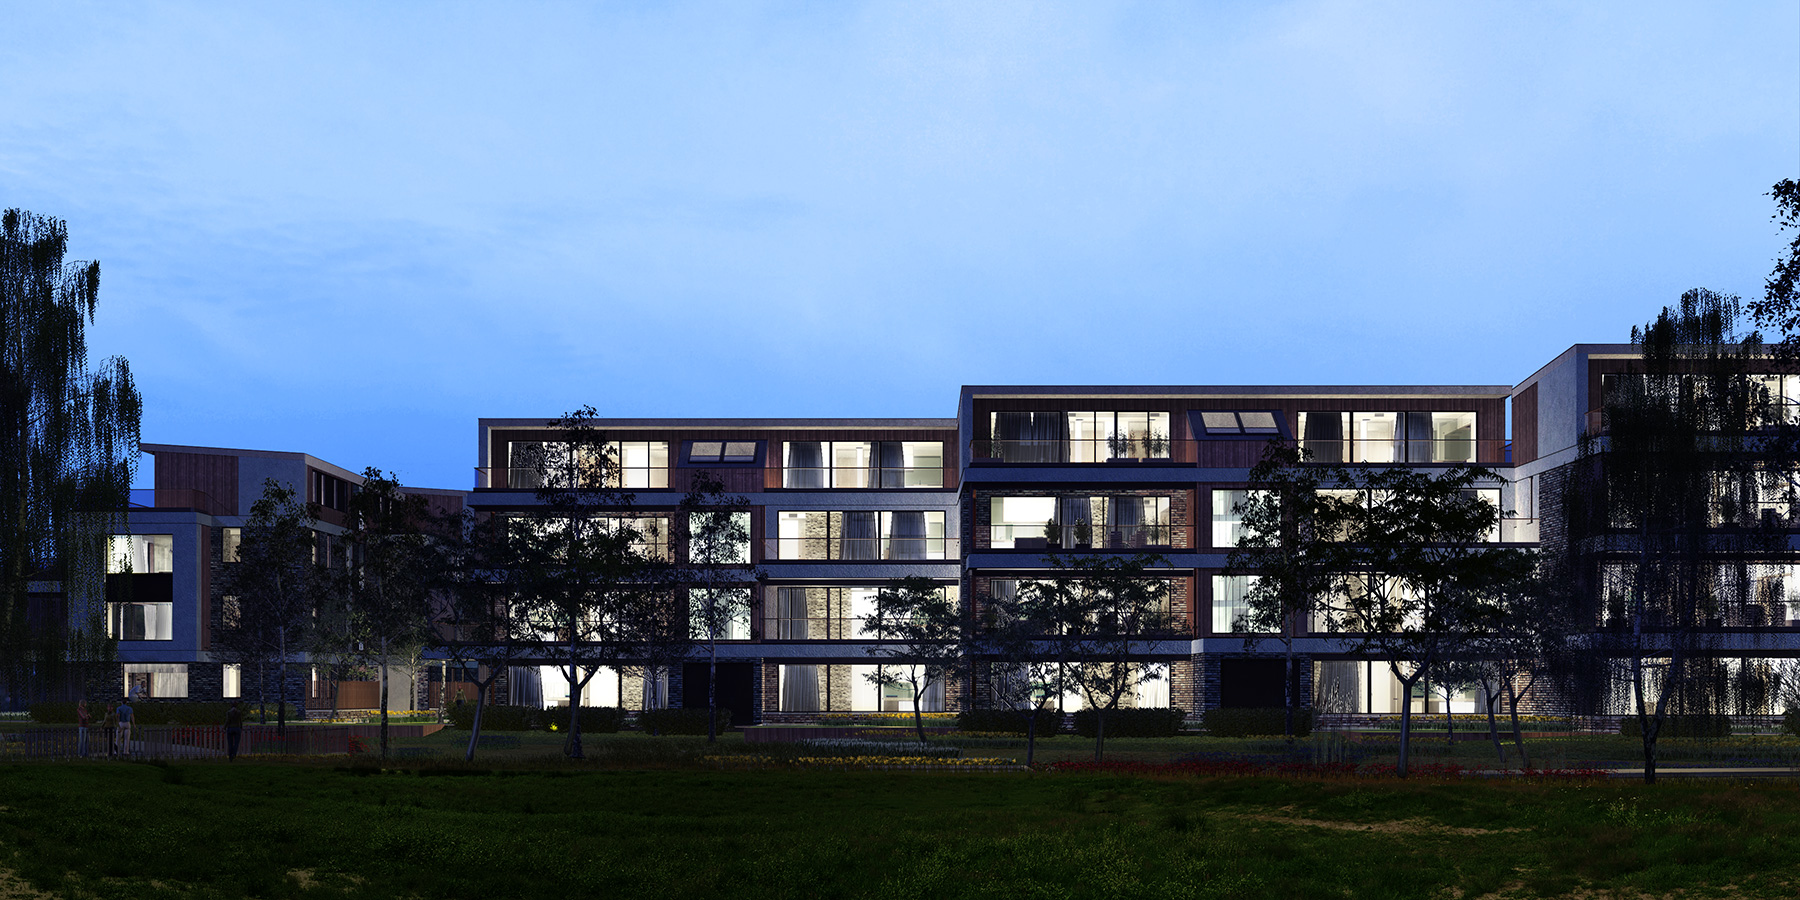 WeatherheadArchitecture_Terrace_Exterior_Naturepark_Night